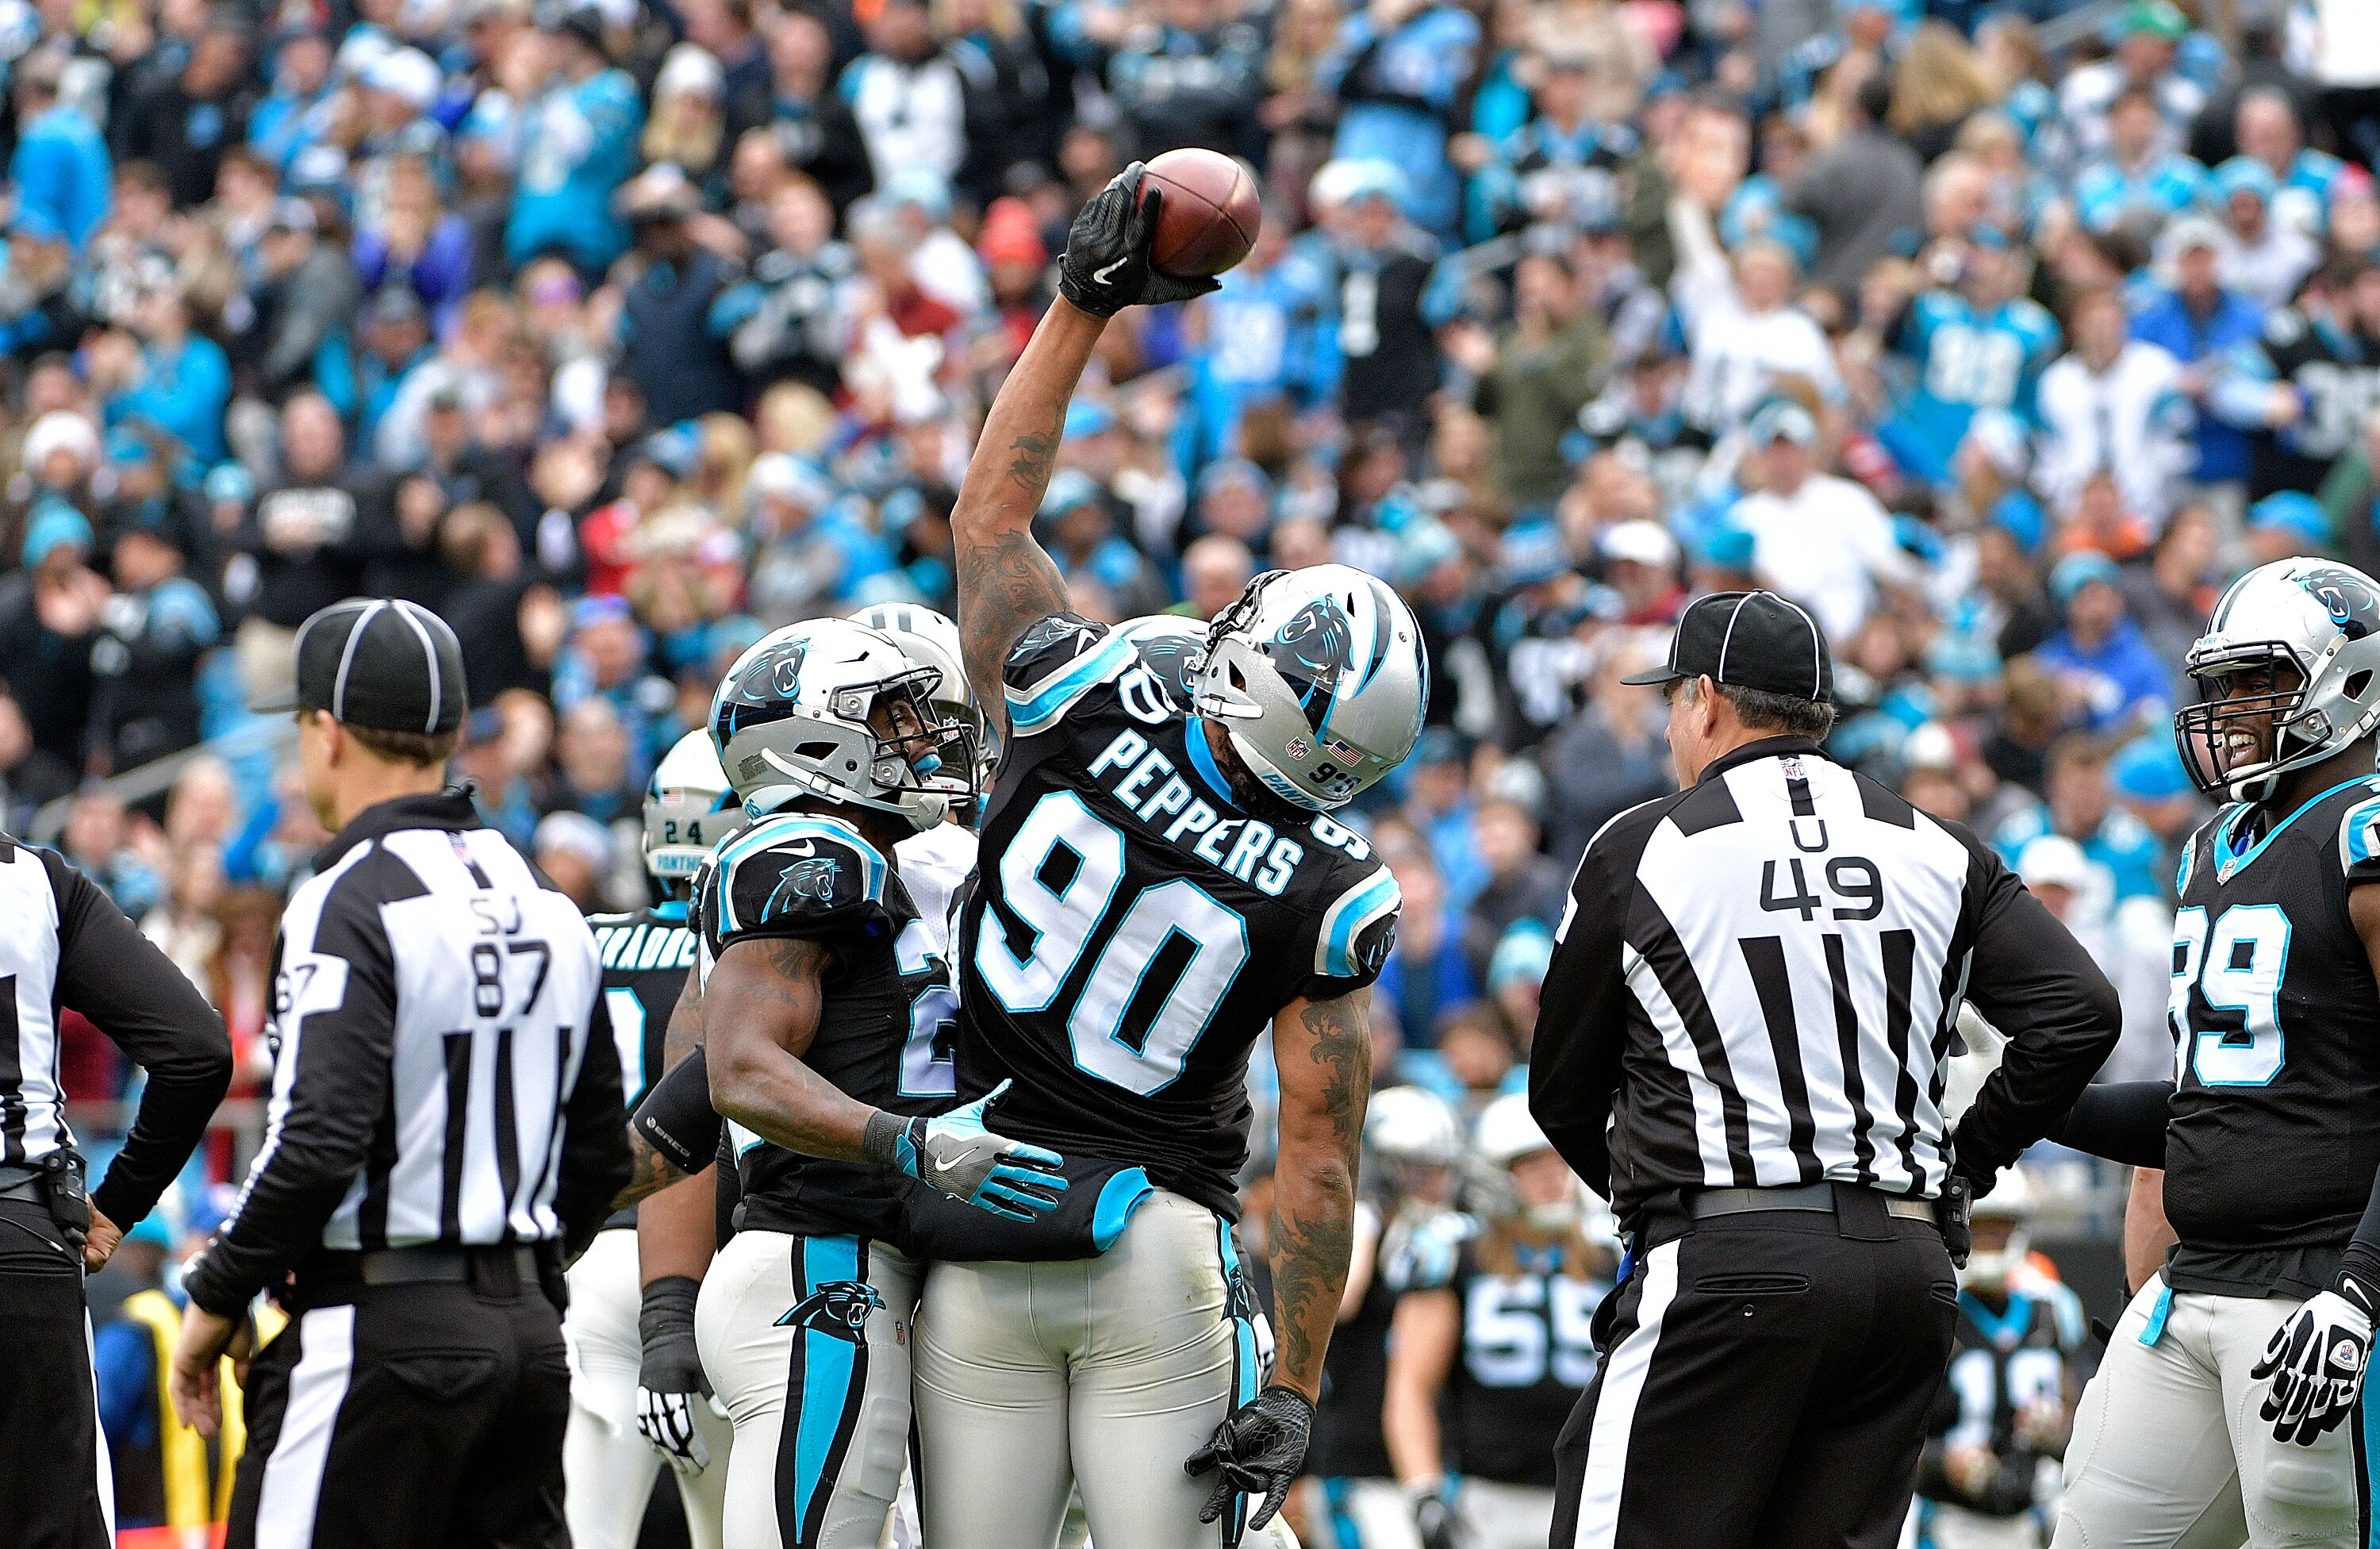 Carolina Panthers punch playoff ticket with 22-19 win